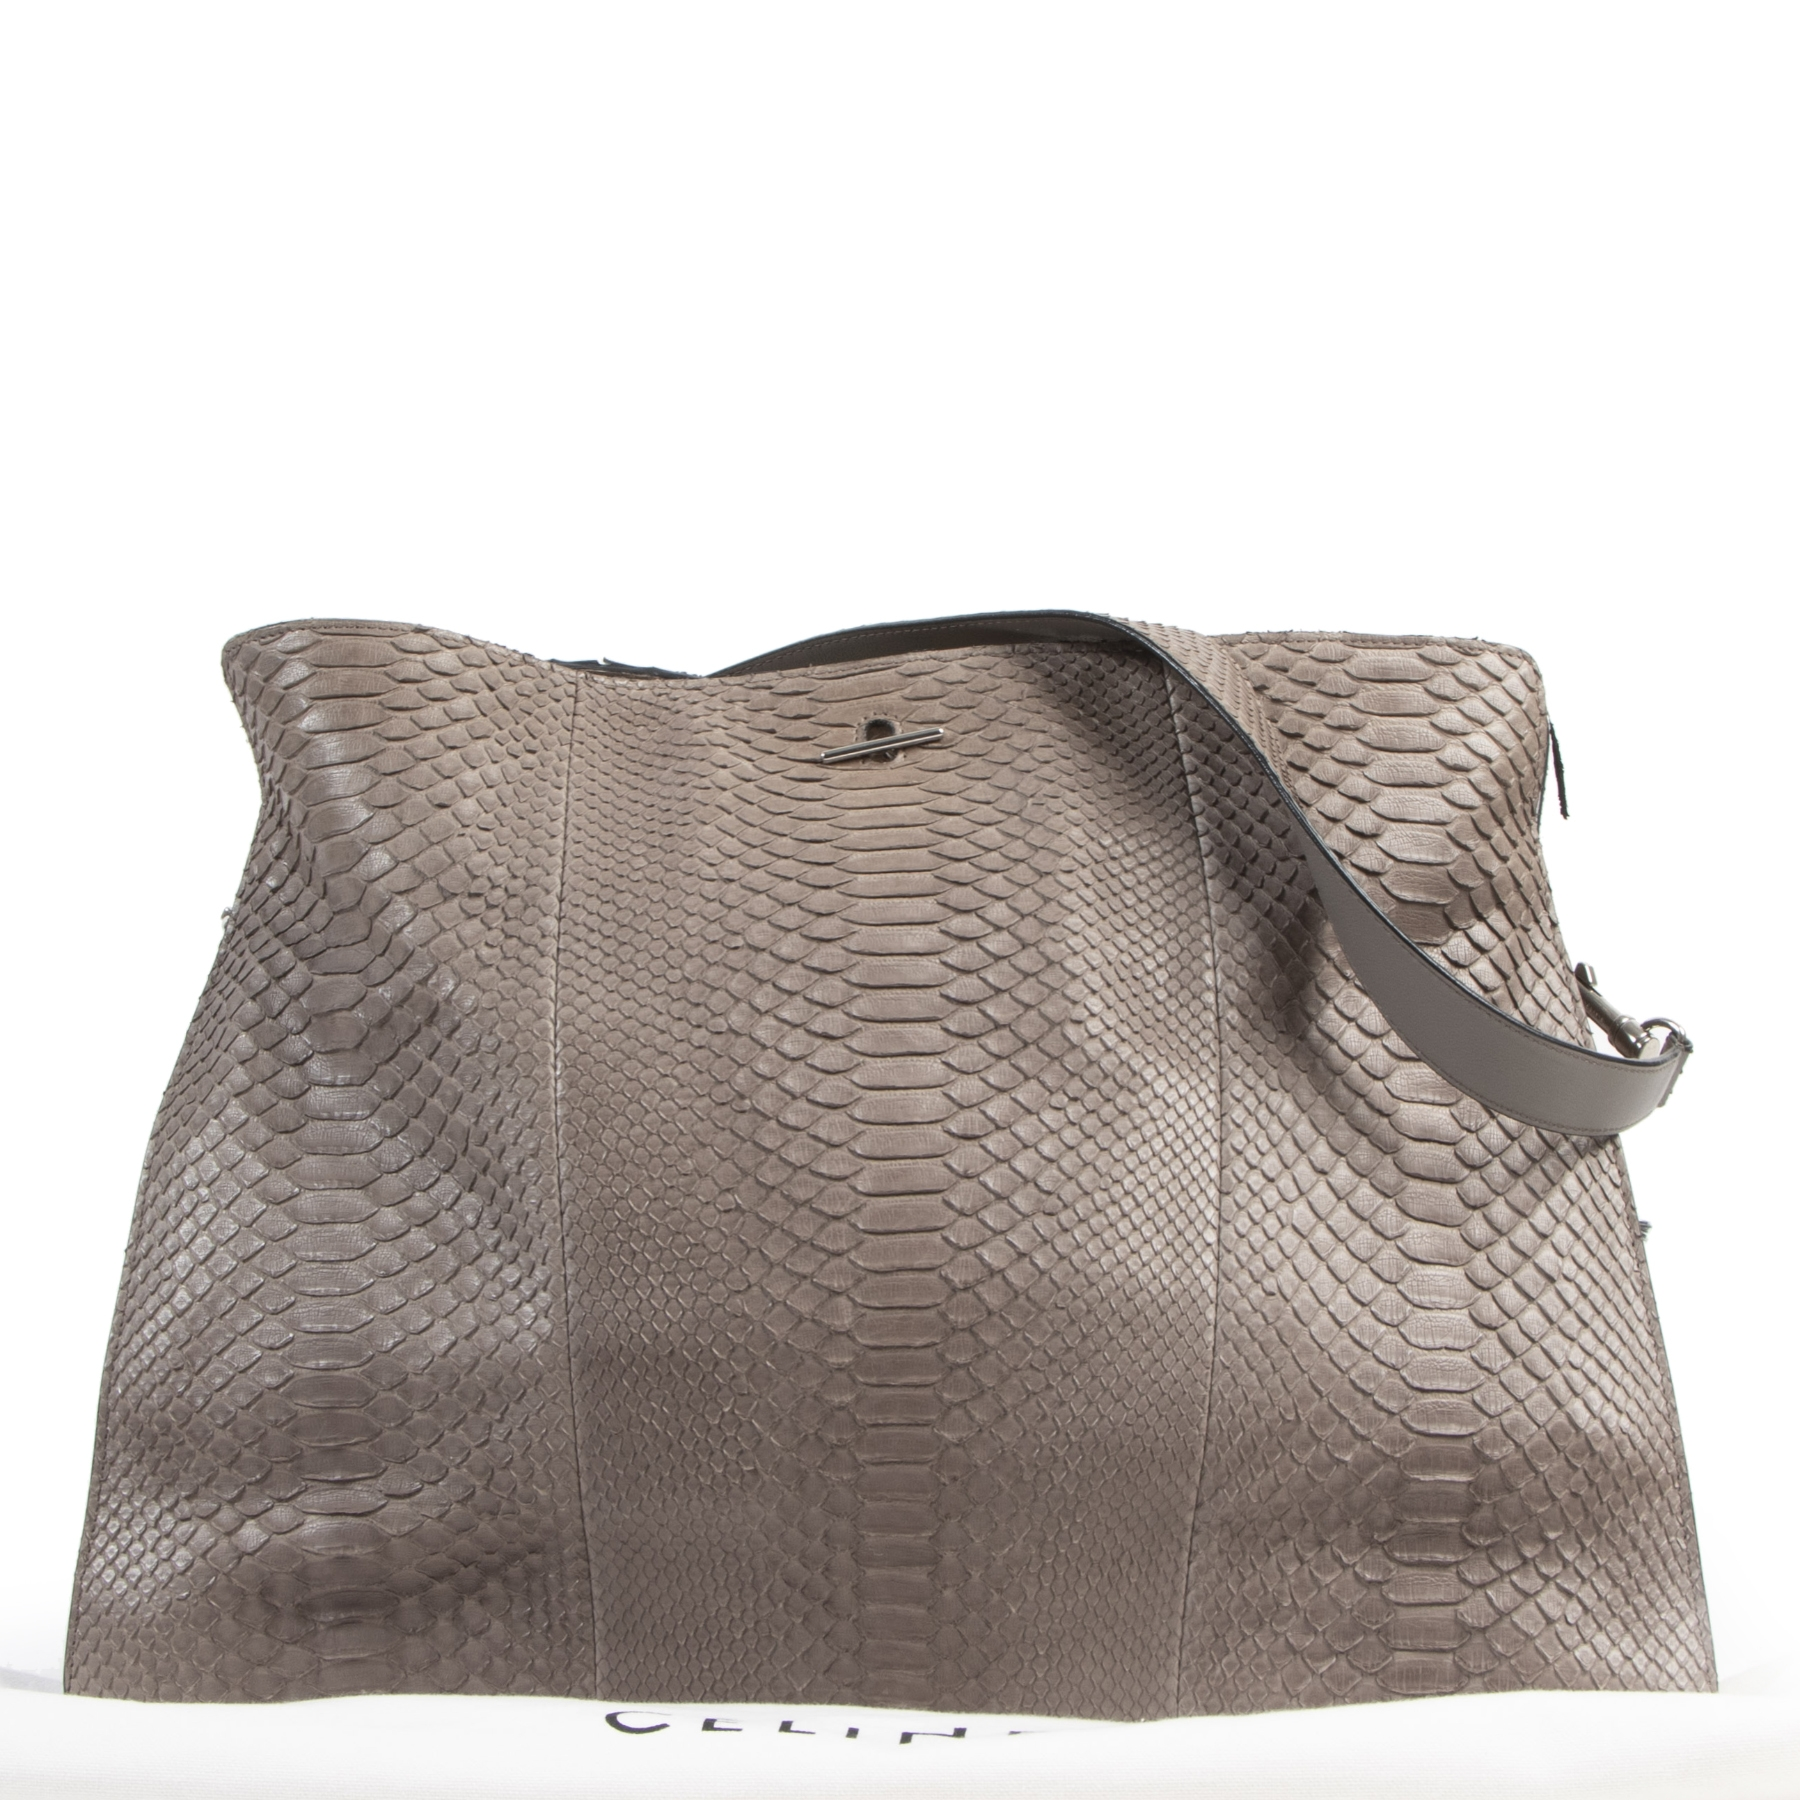 Authentieke tweedehands vintage Celine Taupe Python Shoulder Bag koop online webshop LabelLOV